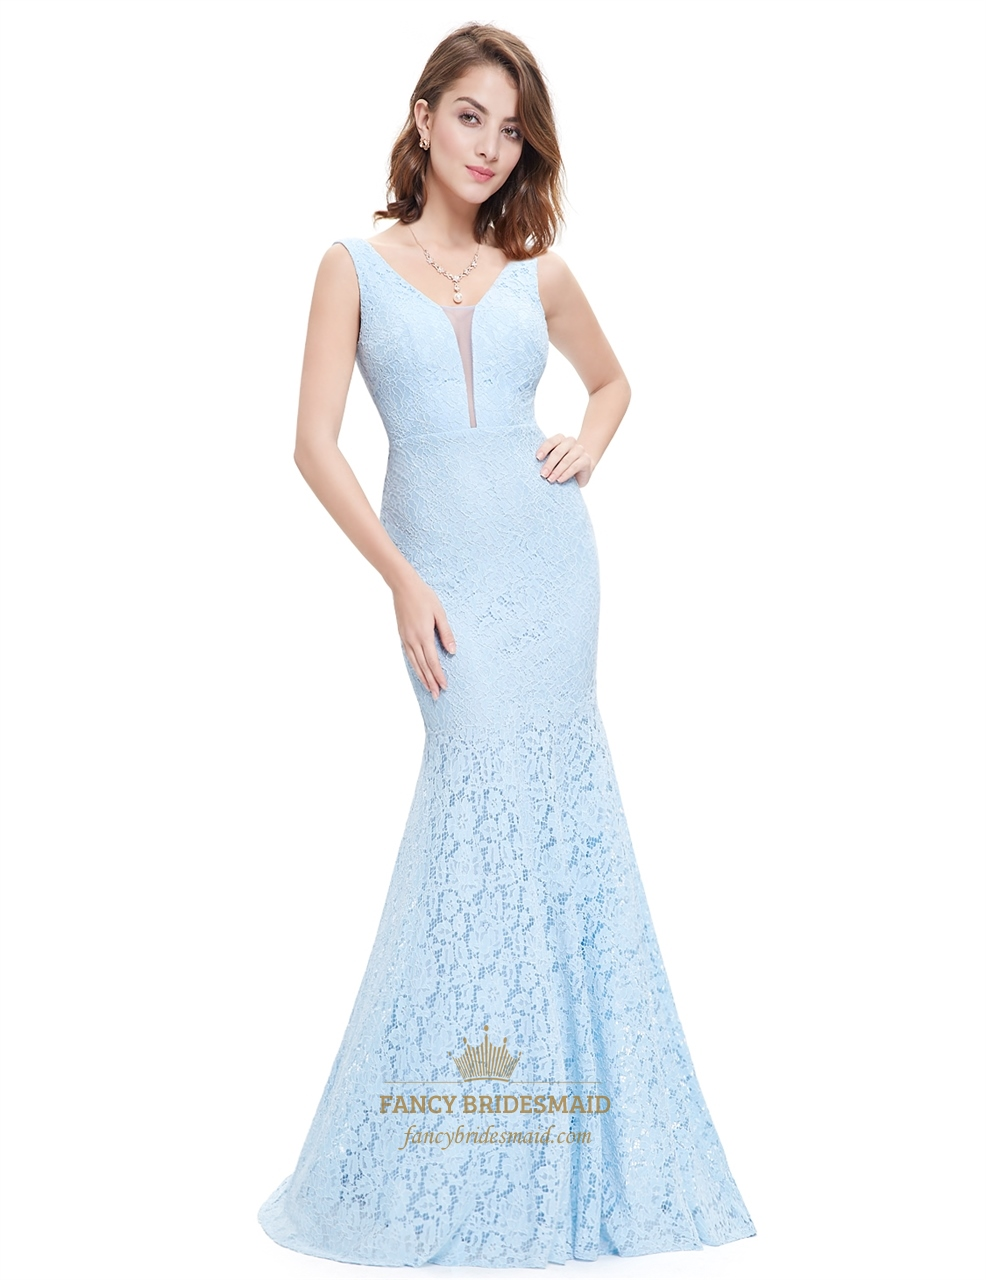 light blue sheer top sleeveless v neck lace mermaid evening dress fancy bridesmaid dresses. Black Bedroom Furniture Sets. Home Design Ideas